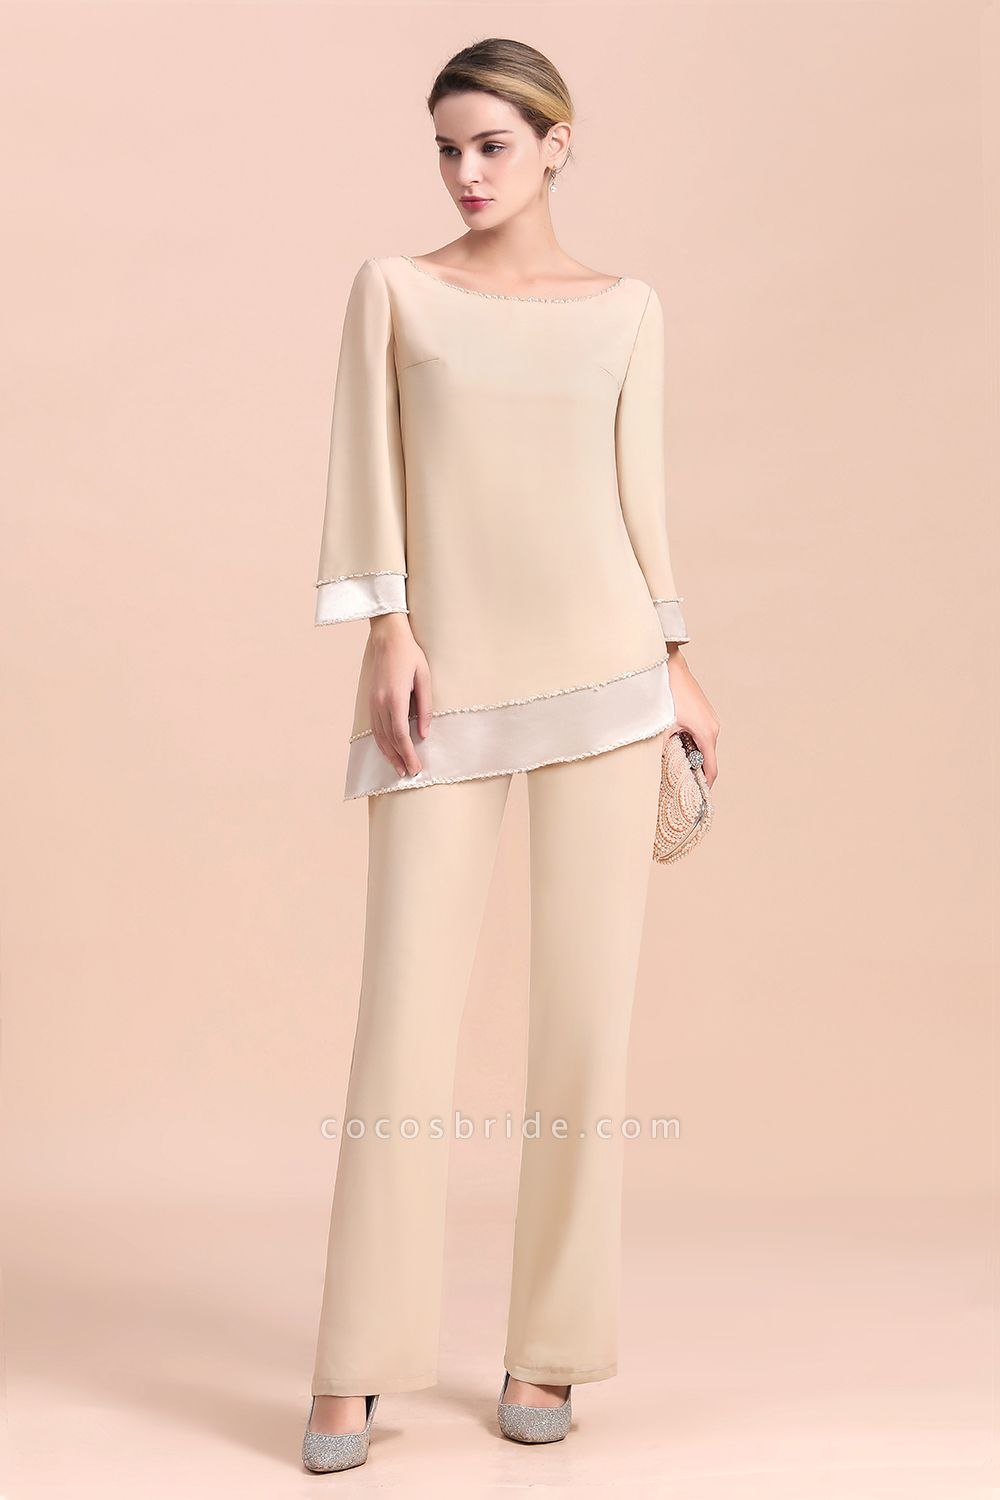 Chic Champagne Chiffon Long Sleeve Mother of Bride Jumpsuit